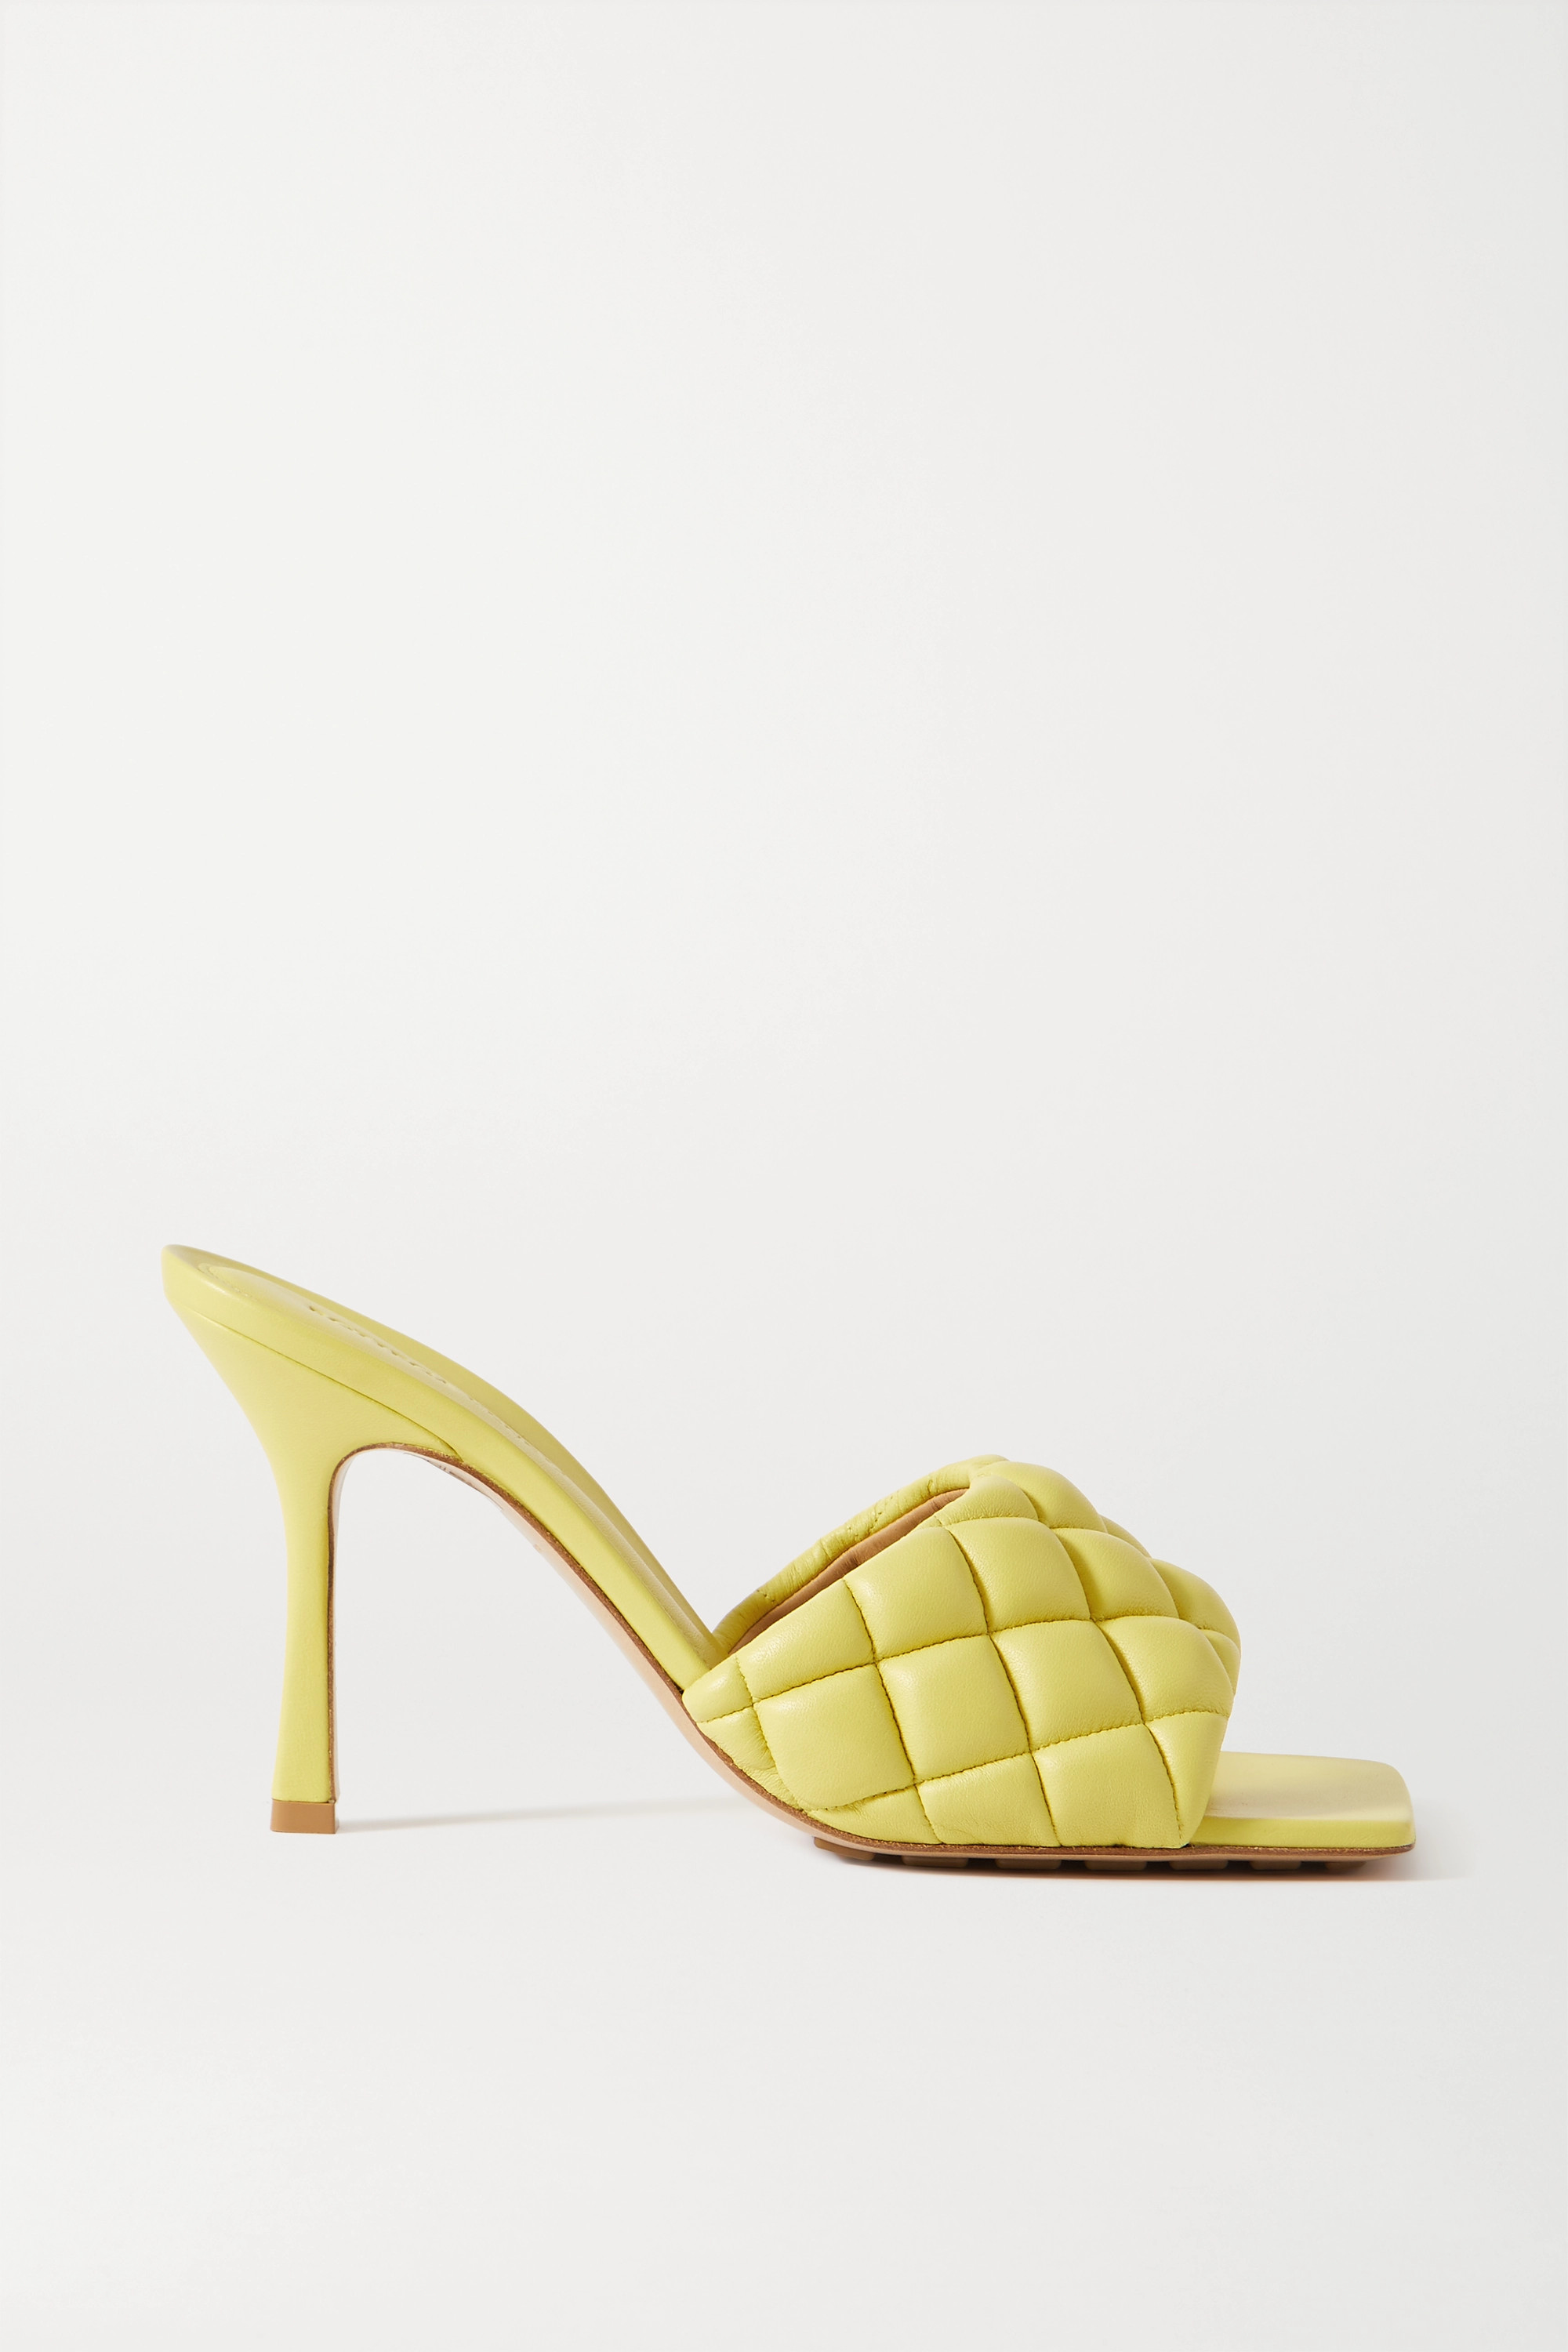 Bottega Veneta Quilted leather mules